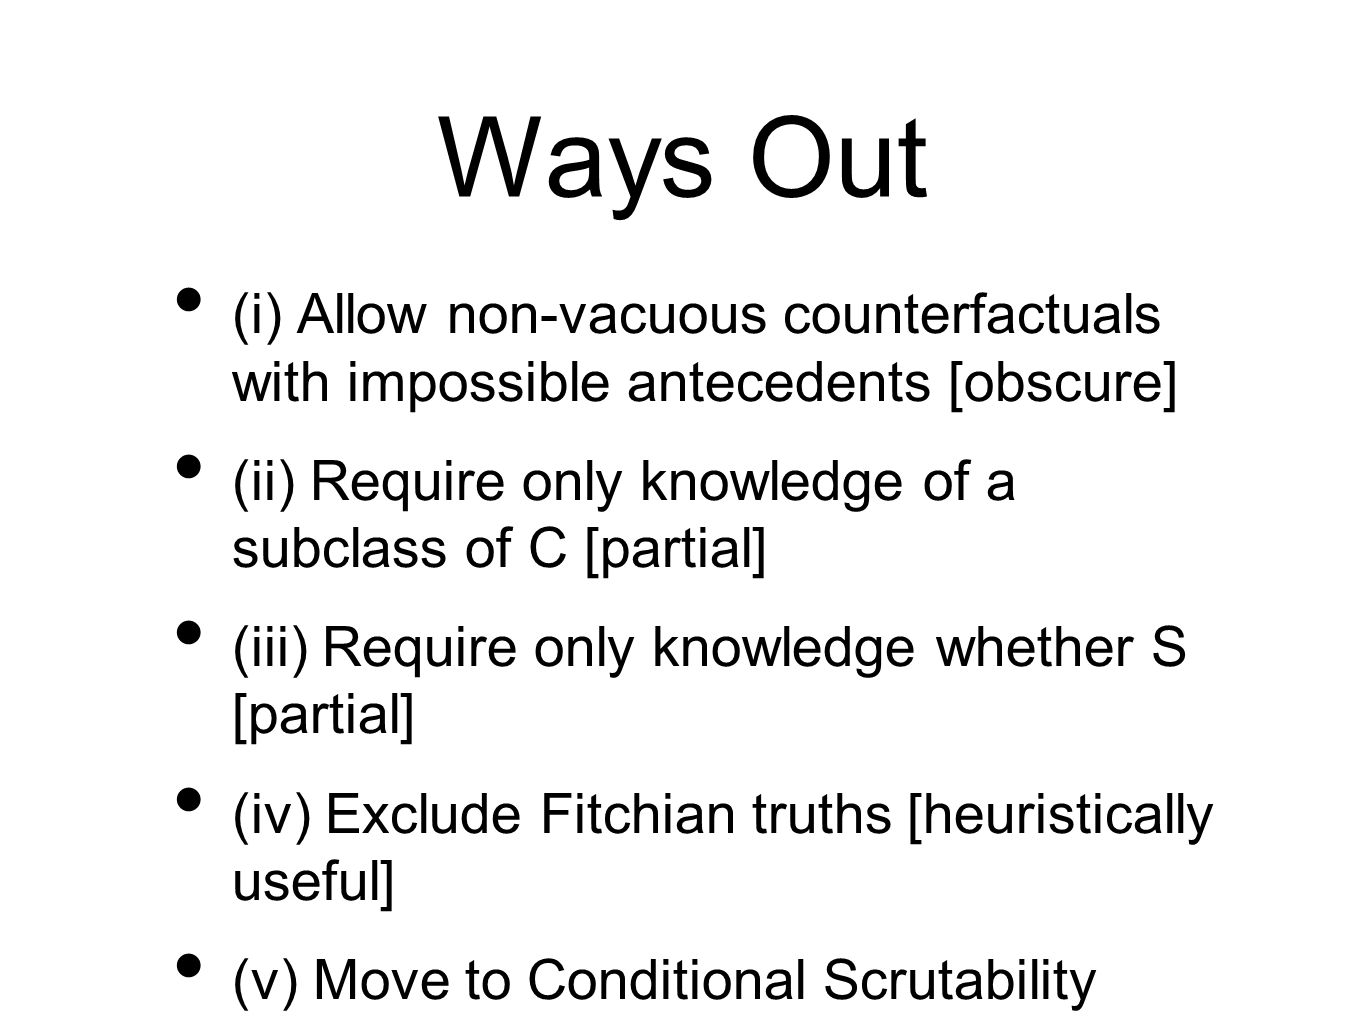 Ways Out (i) Allow non-vacuous counterfactuals with impossible antecedents [obscure] (ii) Require only knowledge of a subclass of C [partial] (iii) Require only knowledge whether S [partial] (iv) Exclude Fitchian truths [heuristically useful] (v) Move to Conditional Scrutability